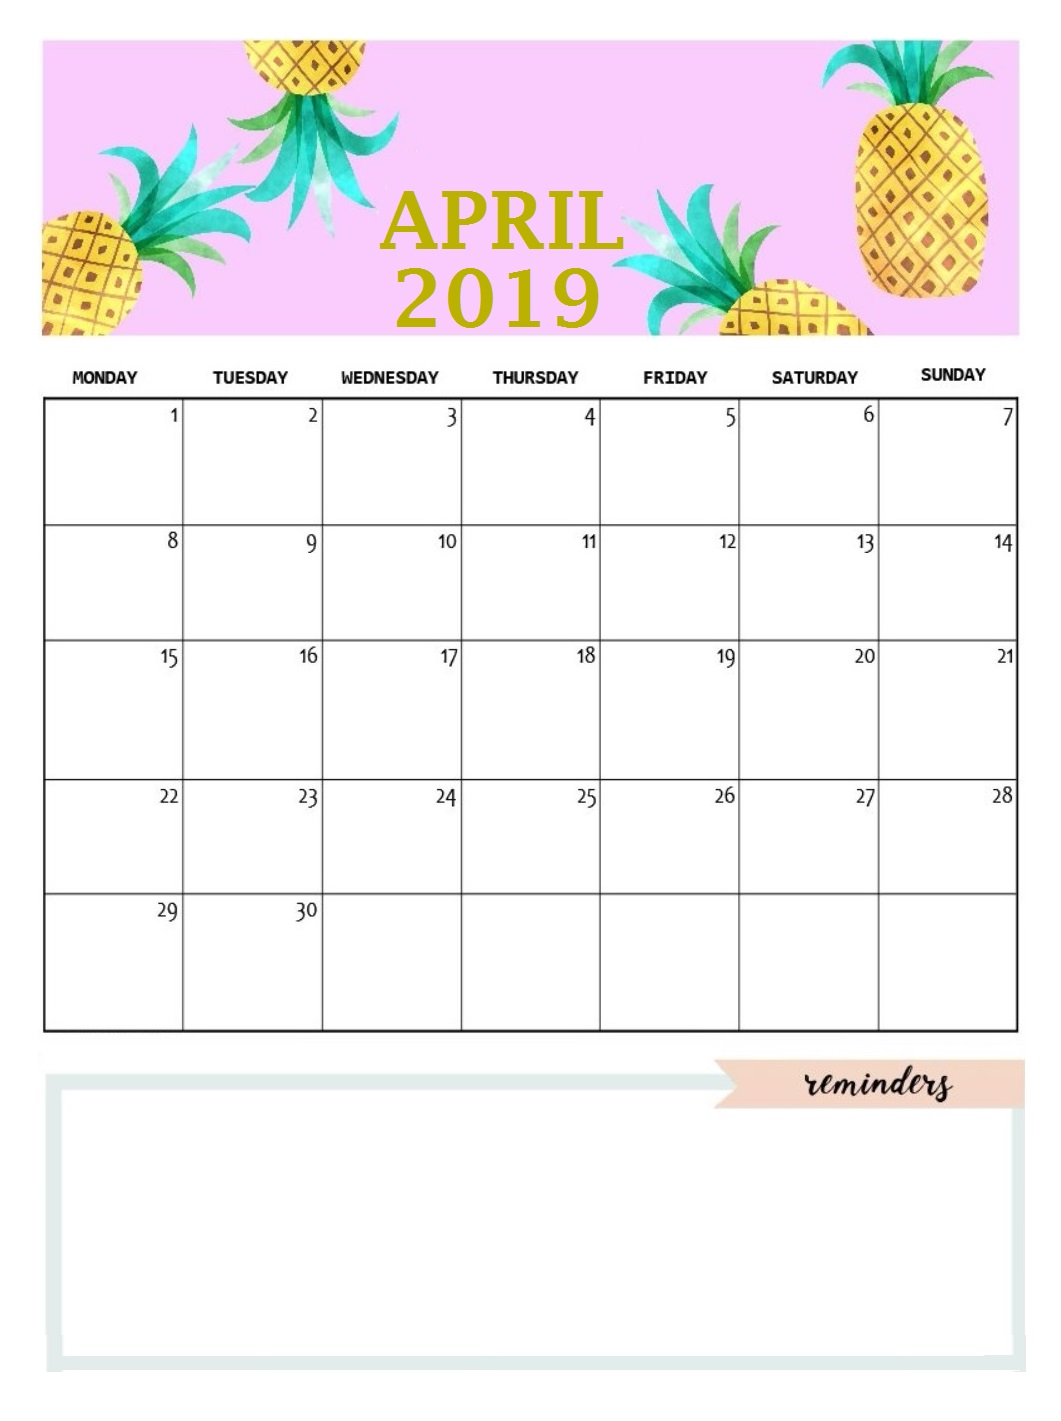 April 2019 Calendar Template Design